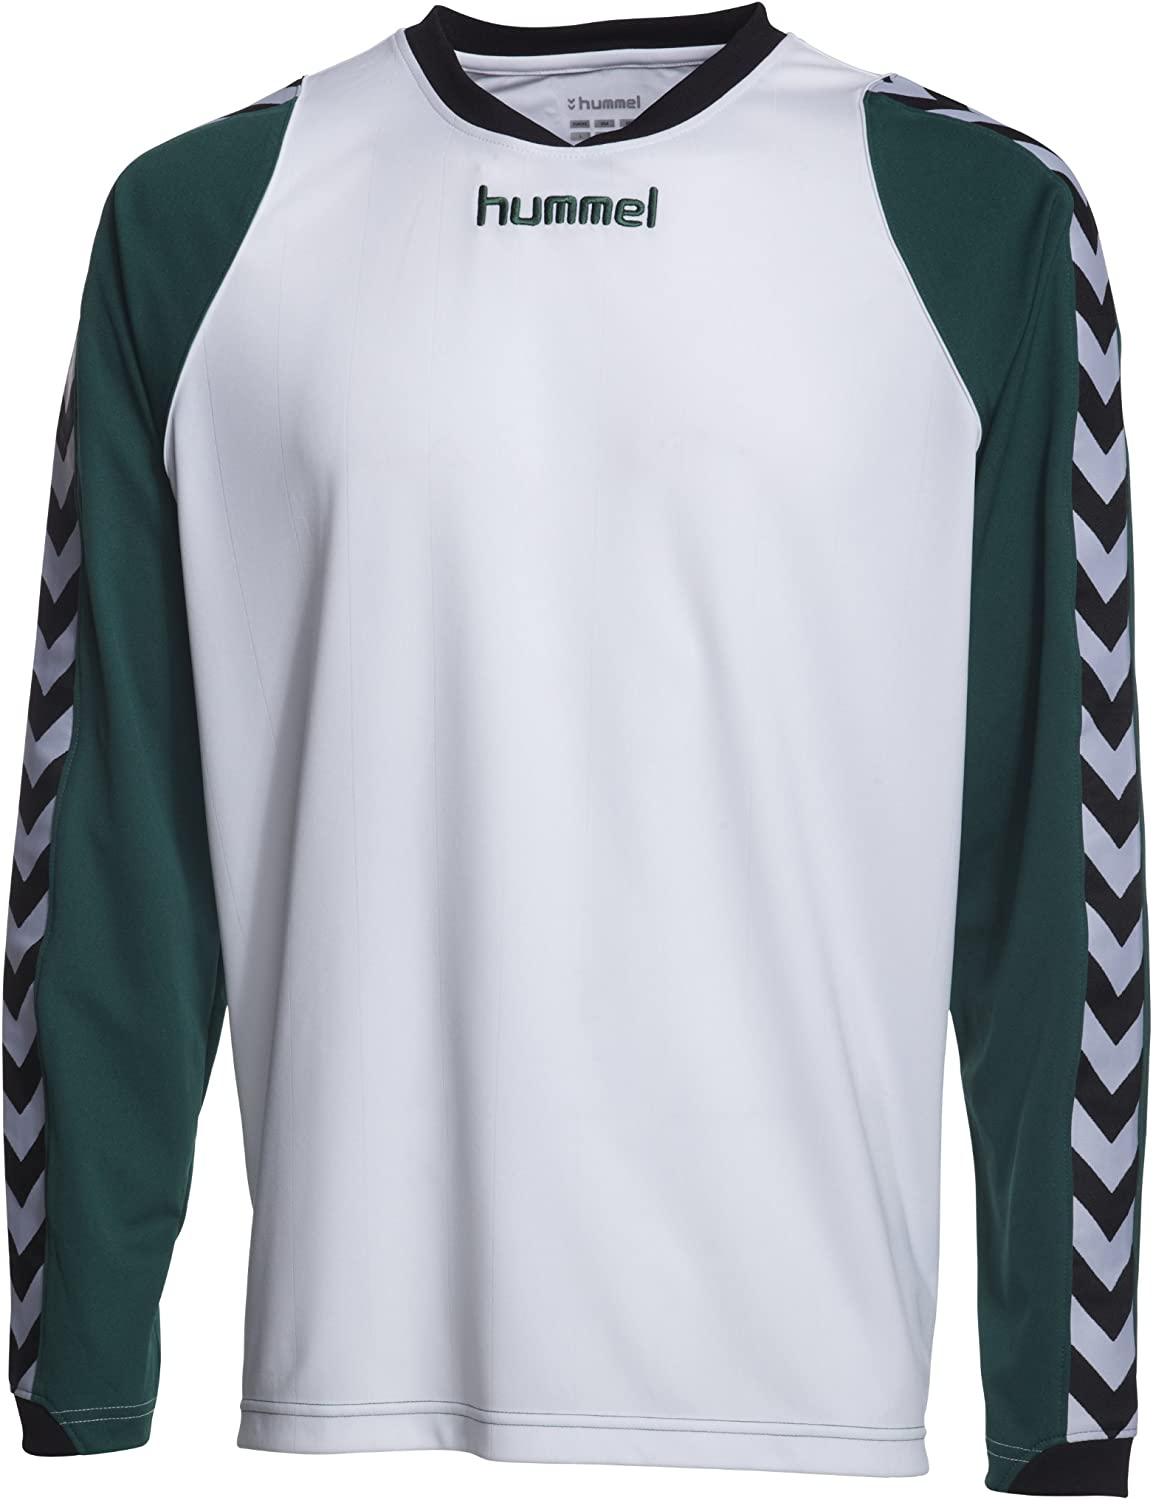 Camiseta para Hombre Hummel Bee Authentic